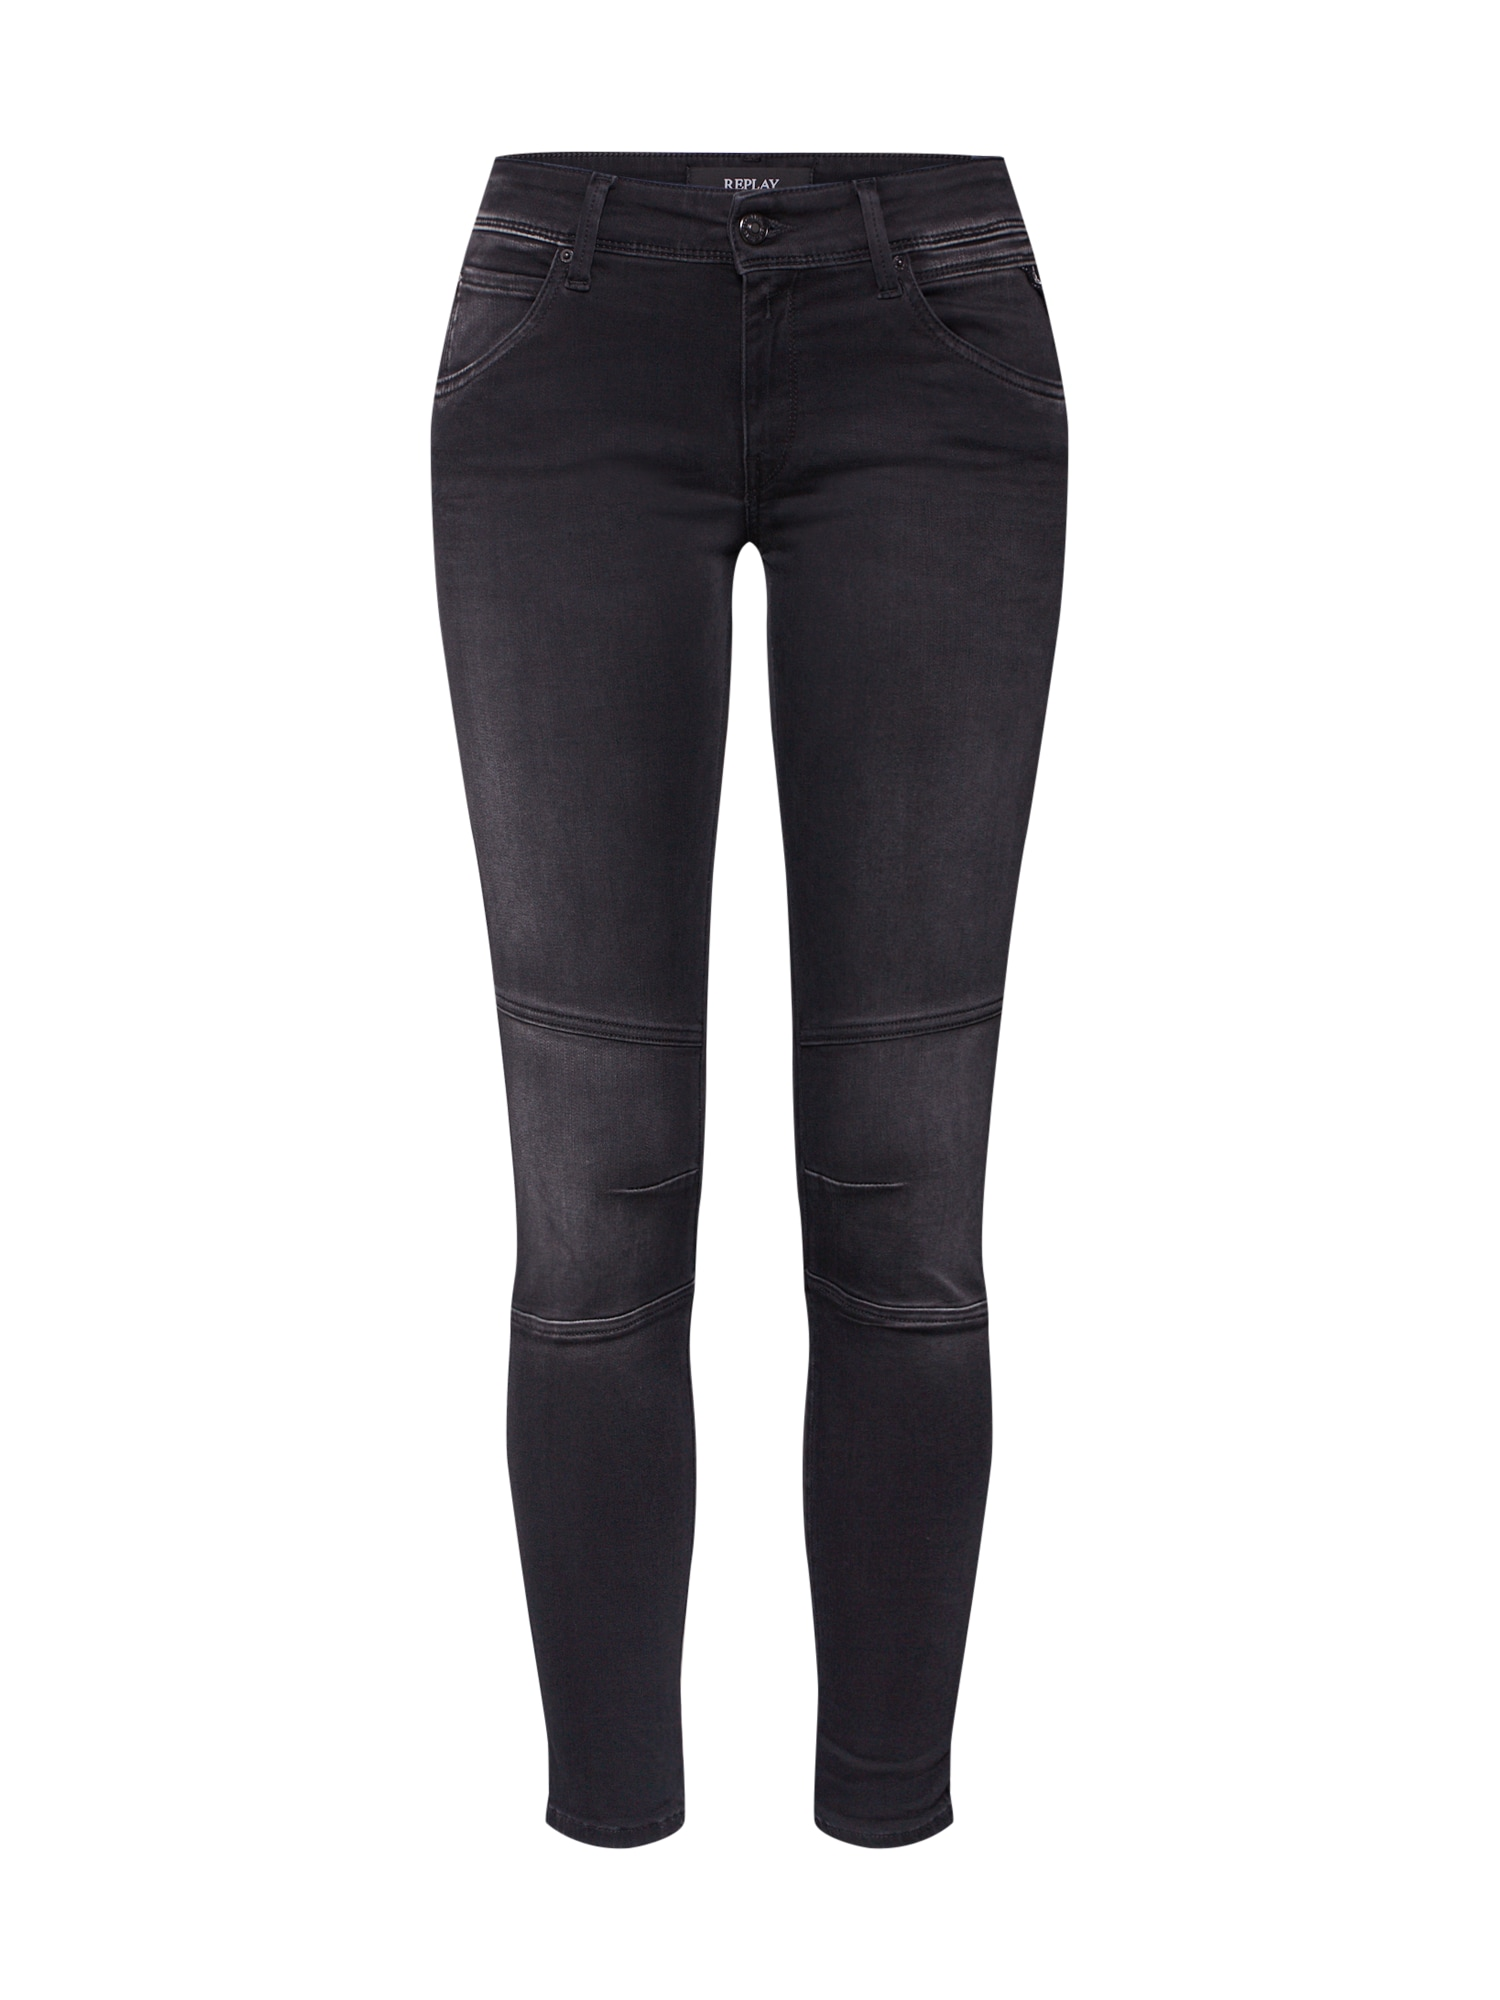 REPLAY Jeans 'KAYTE HYPERFLEX'  negru